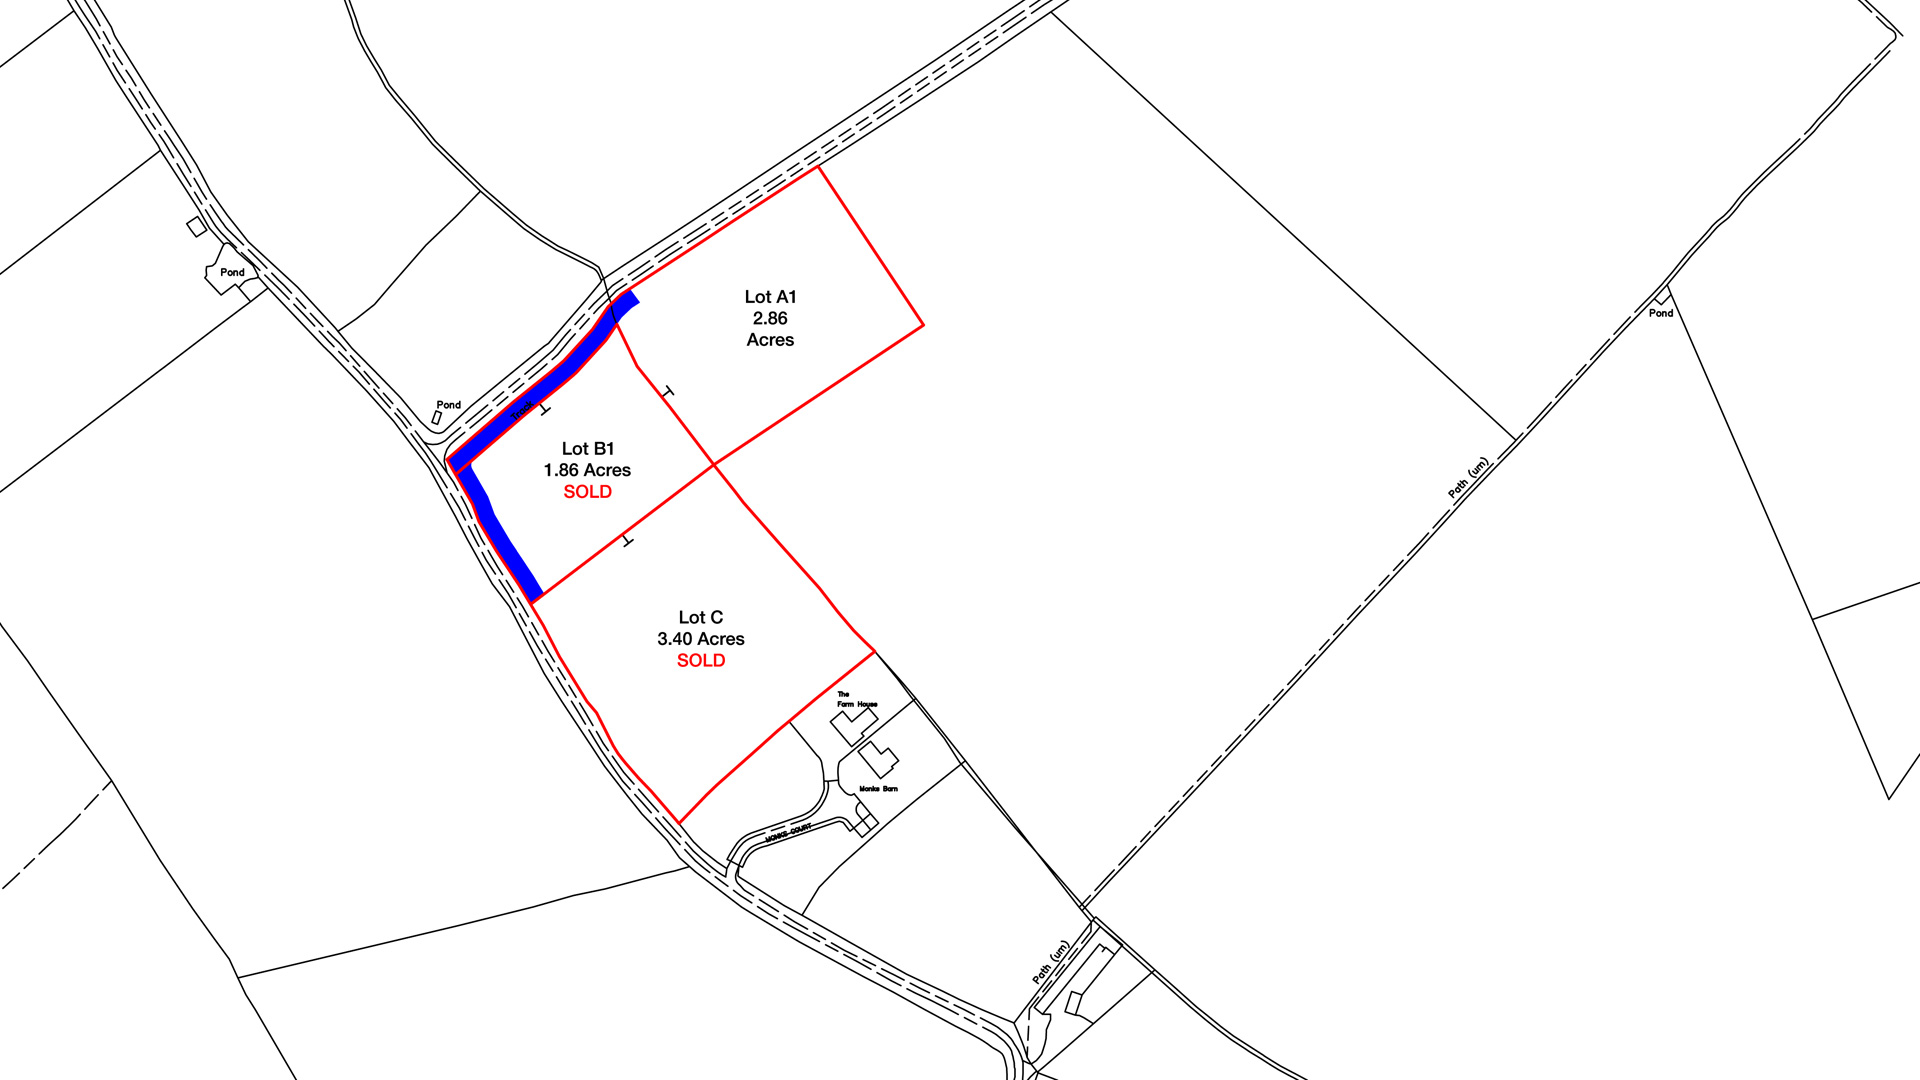 Land for sale in Buckland site plan